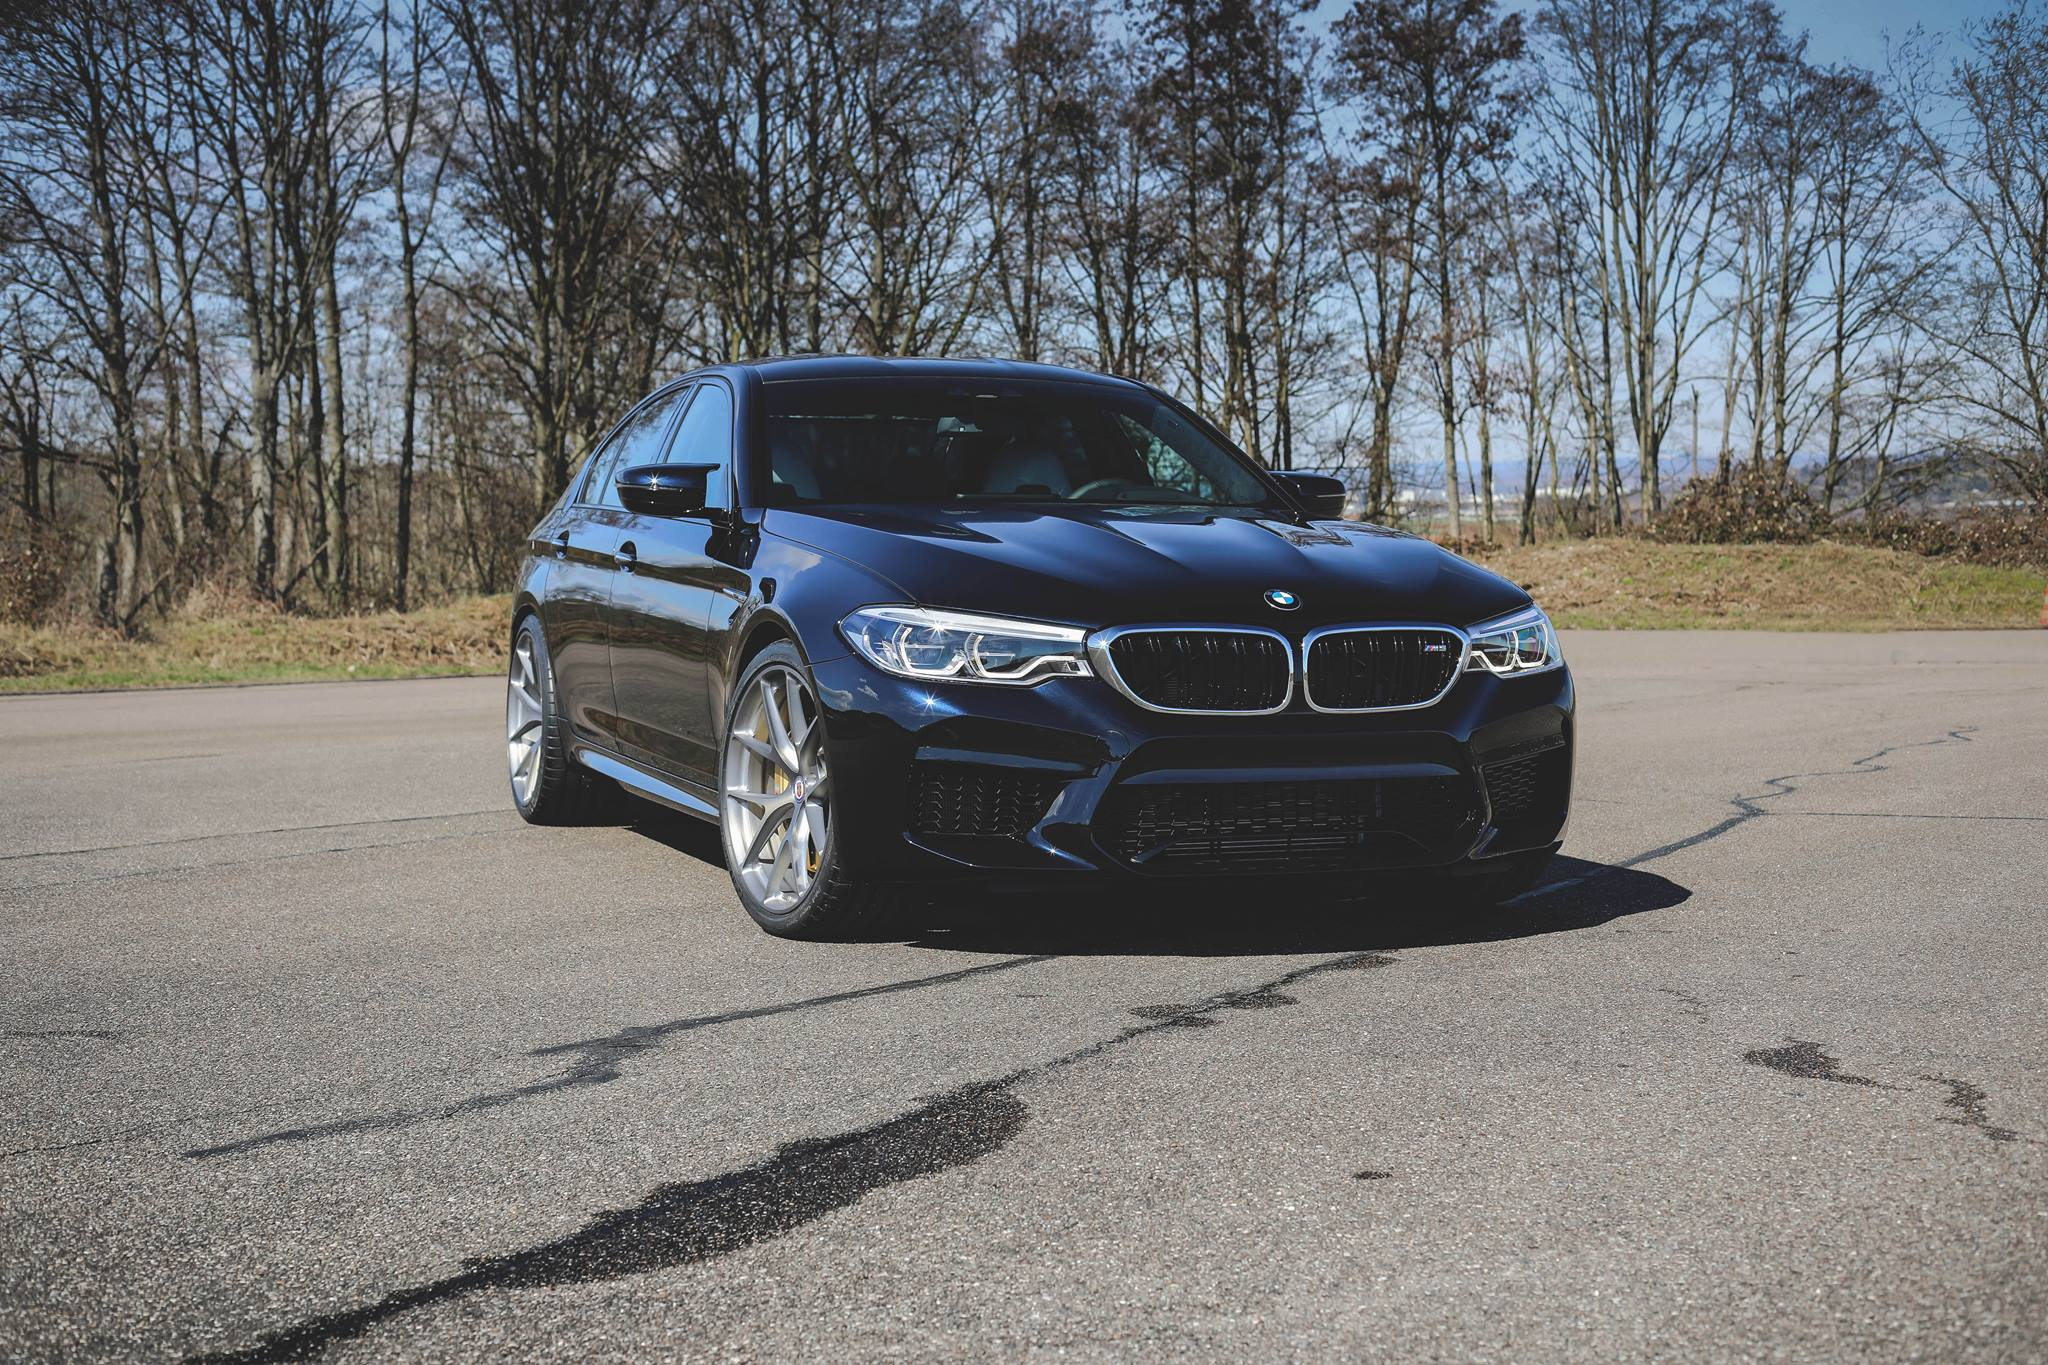 BMW F90 M5 on HRE P101 Wheels in Brushed Titanium 1